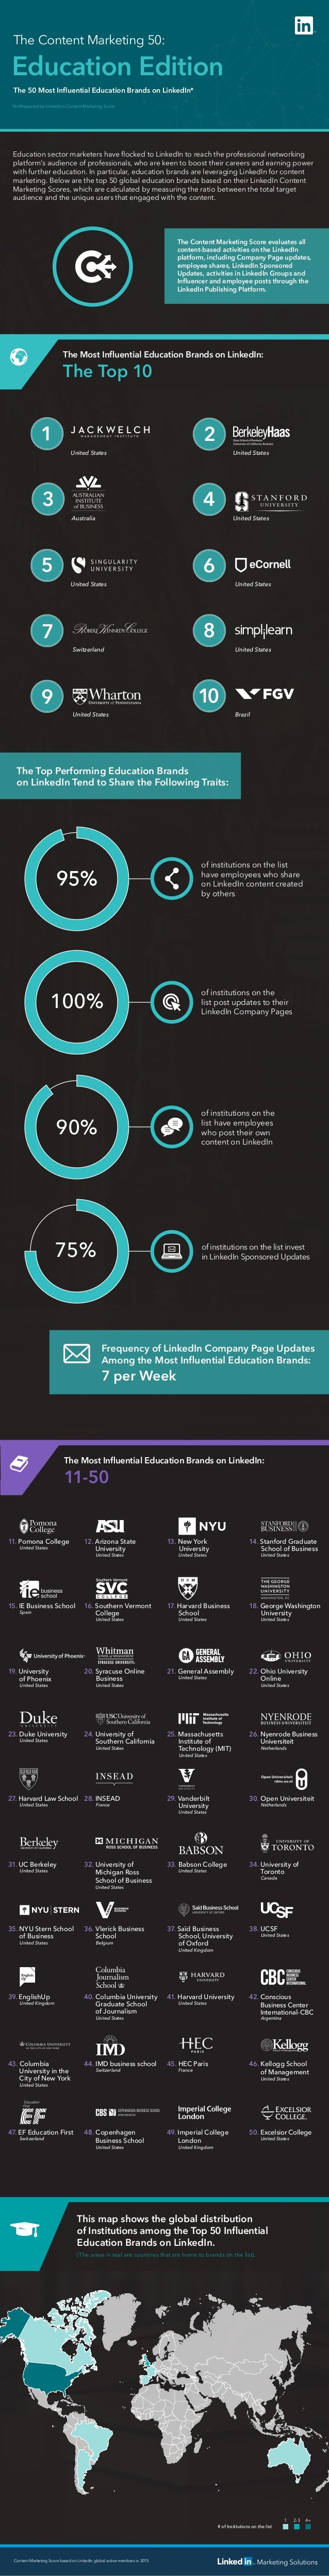 *As Measured by LinkedIn's Content Marketing Score The Most Influential Education Brands on LinkedIn: The Top 10 Content Ma...